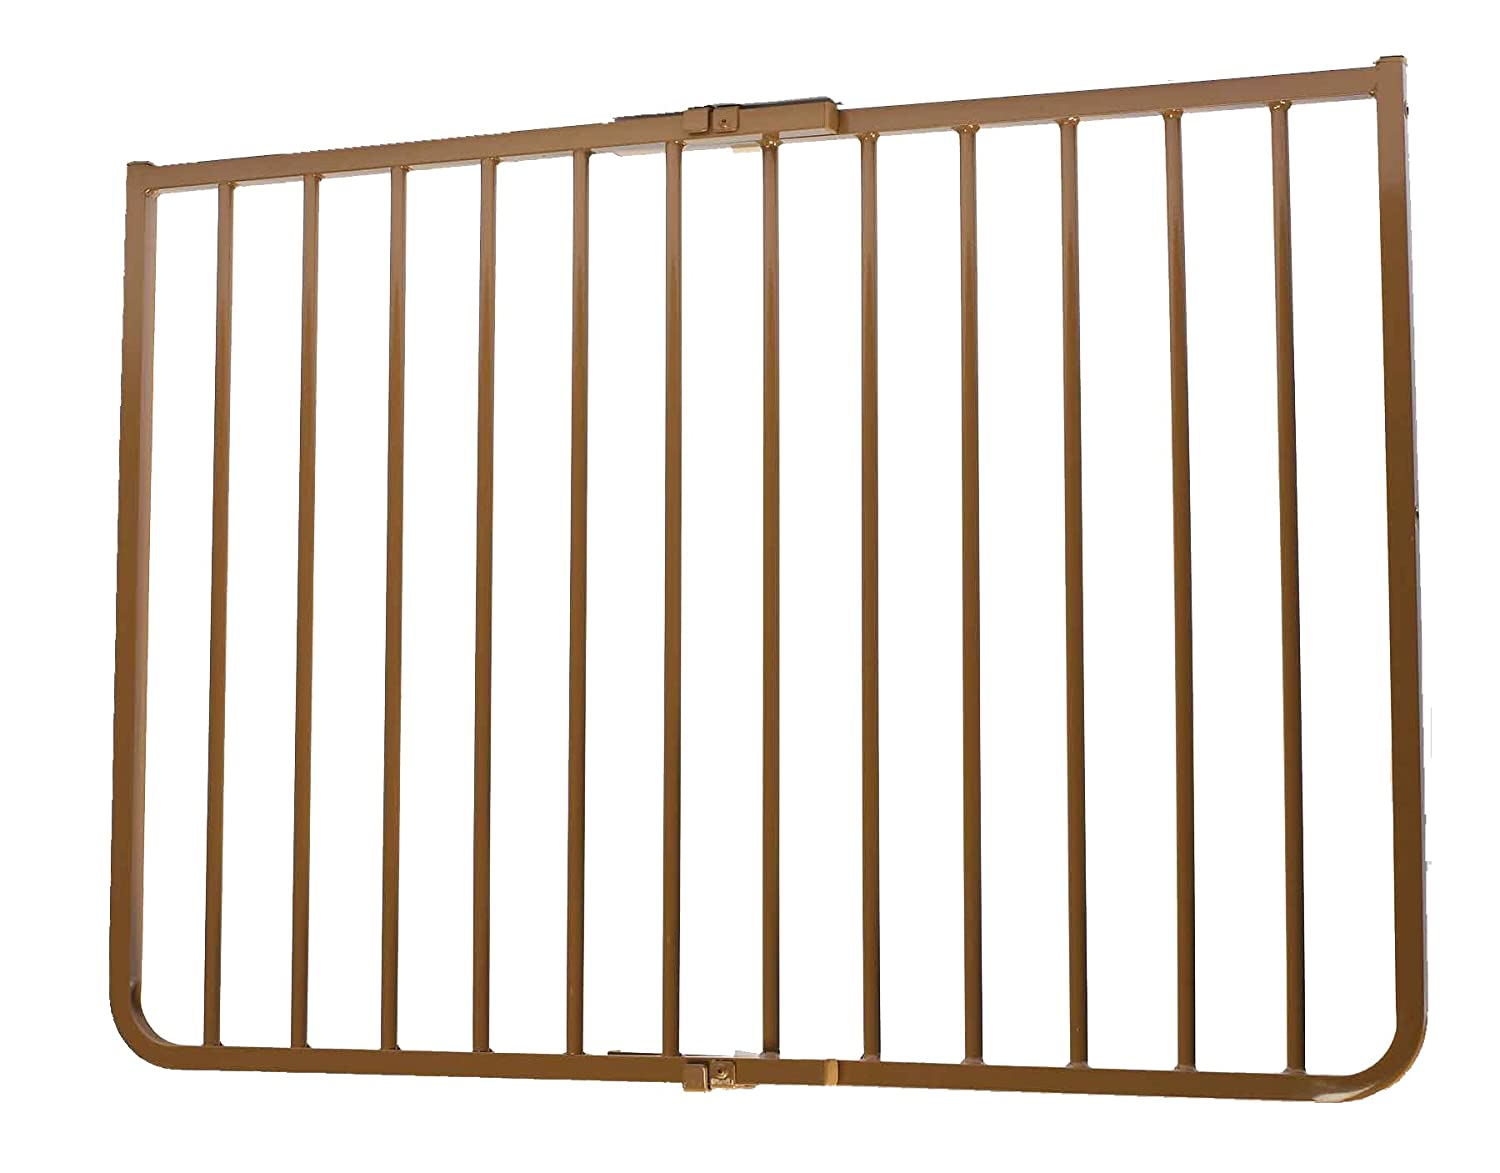 Amazon.com : Cardinal Gates Outdoor Safety Gate, Brown : Indoor Safety Gates  : Pet Supplies